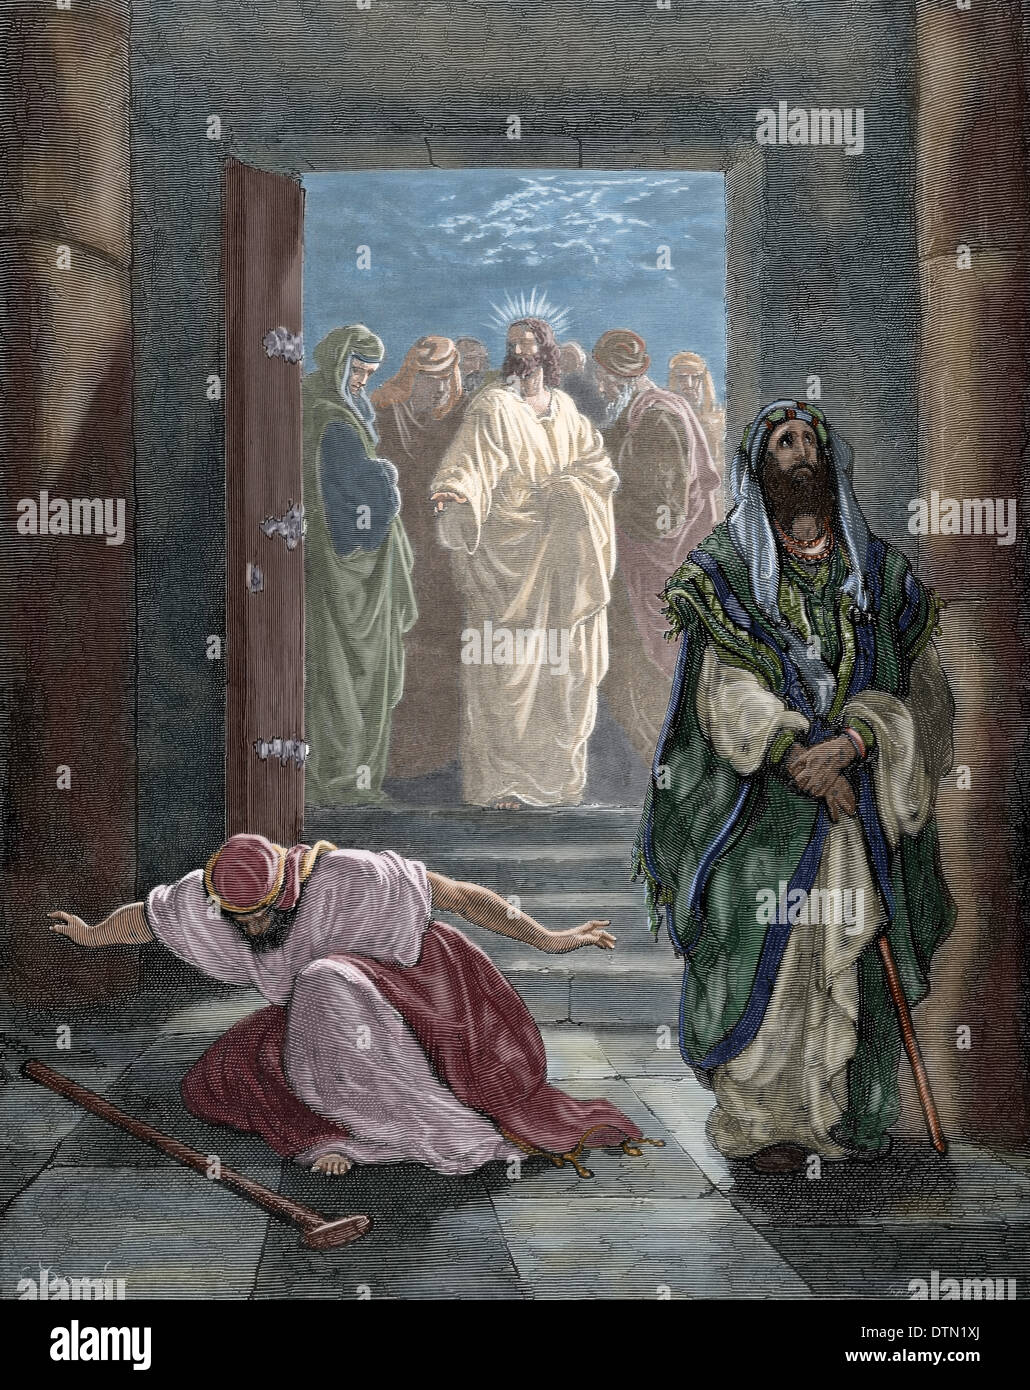 New Testament. Gospel of Luke. Chapter XVIII. Parable of the Pharisee and the Publican. Colored engraving. - Stock Image